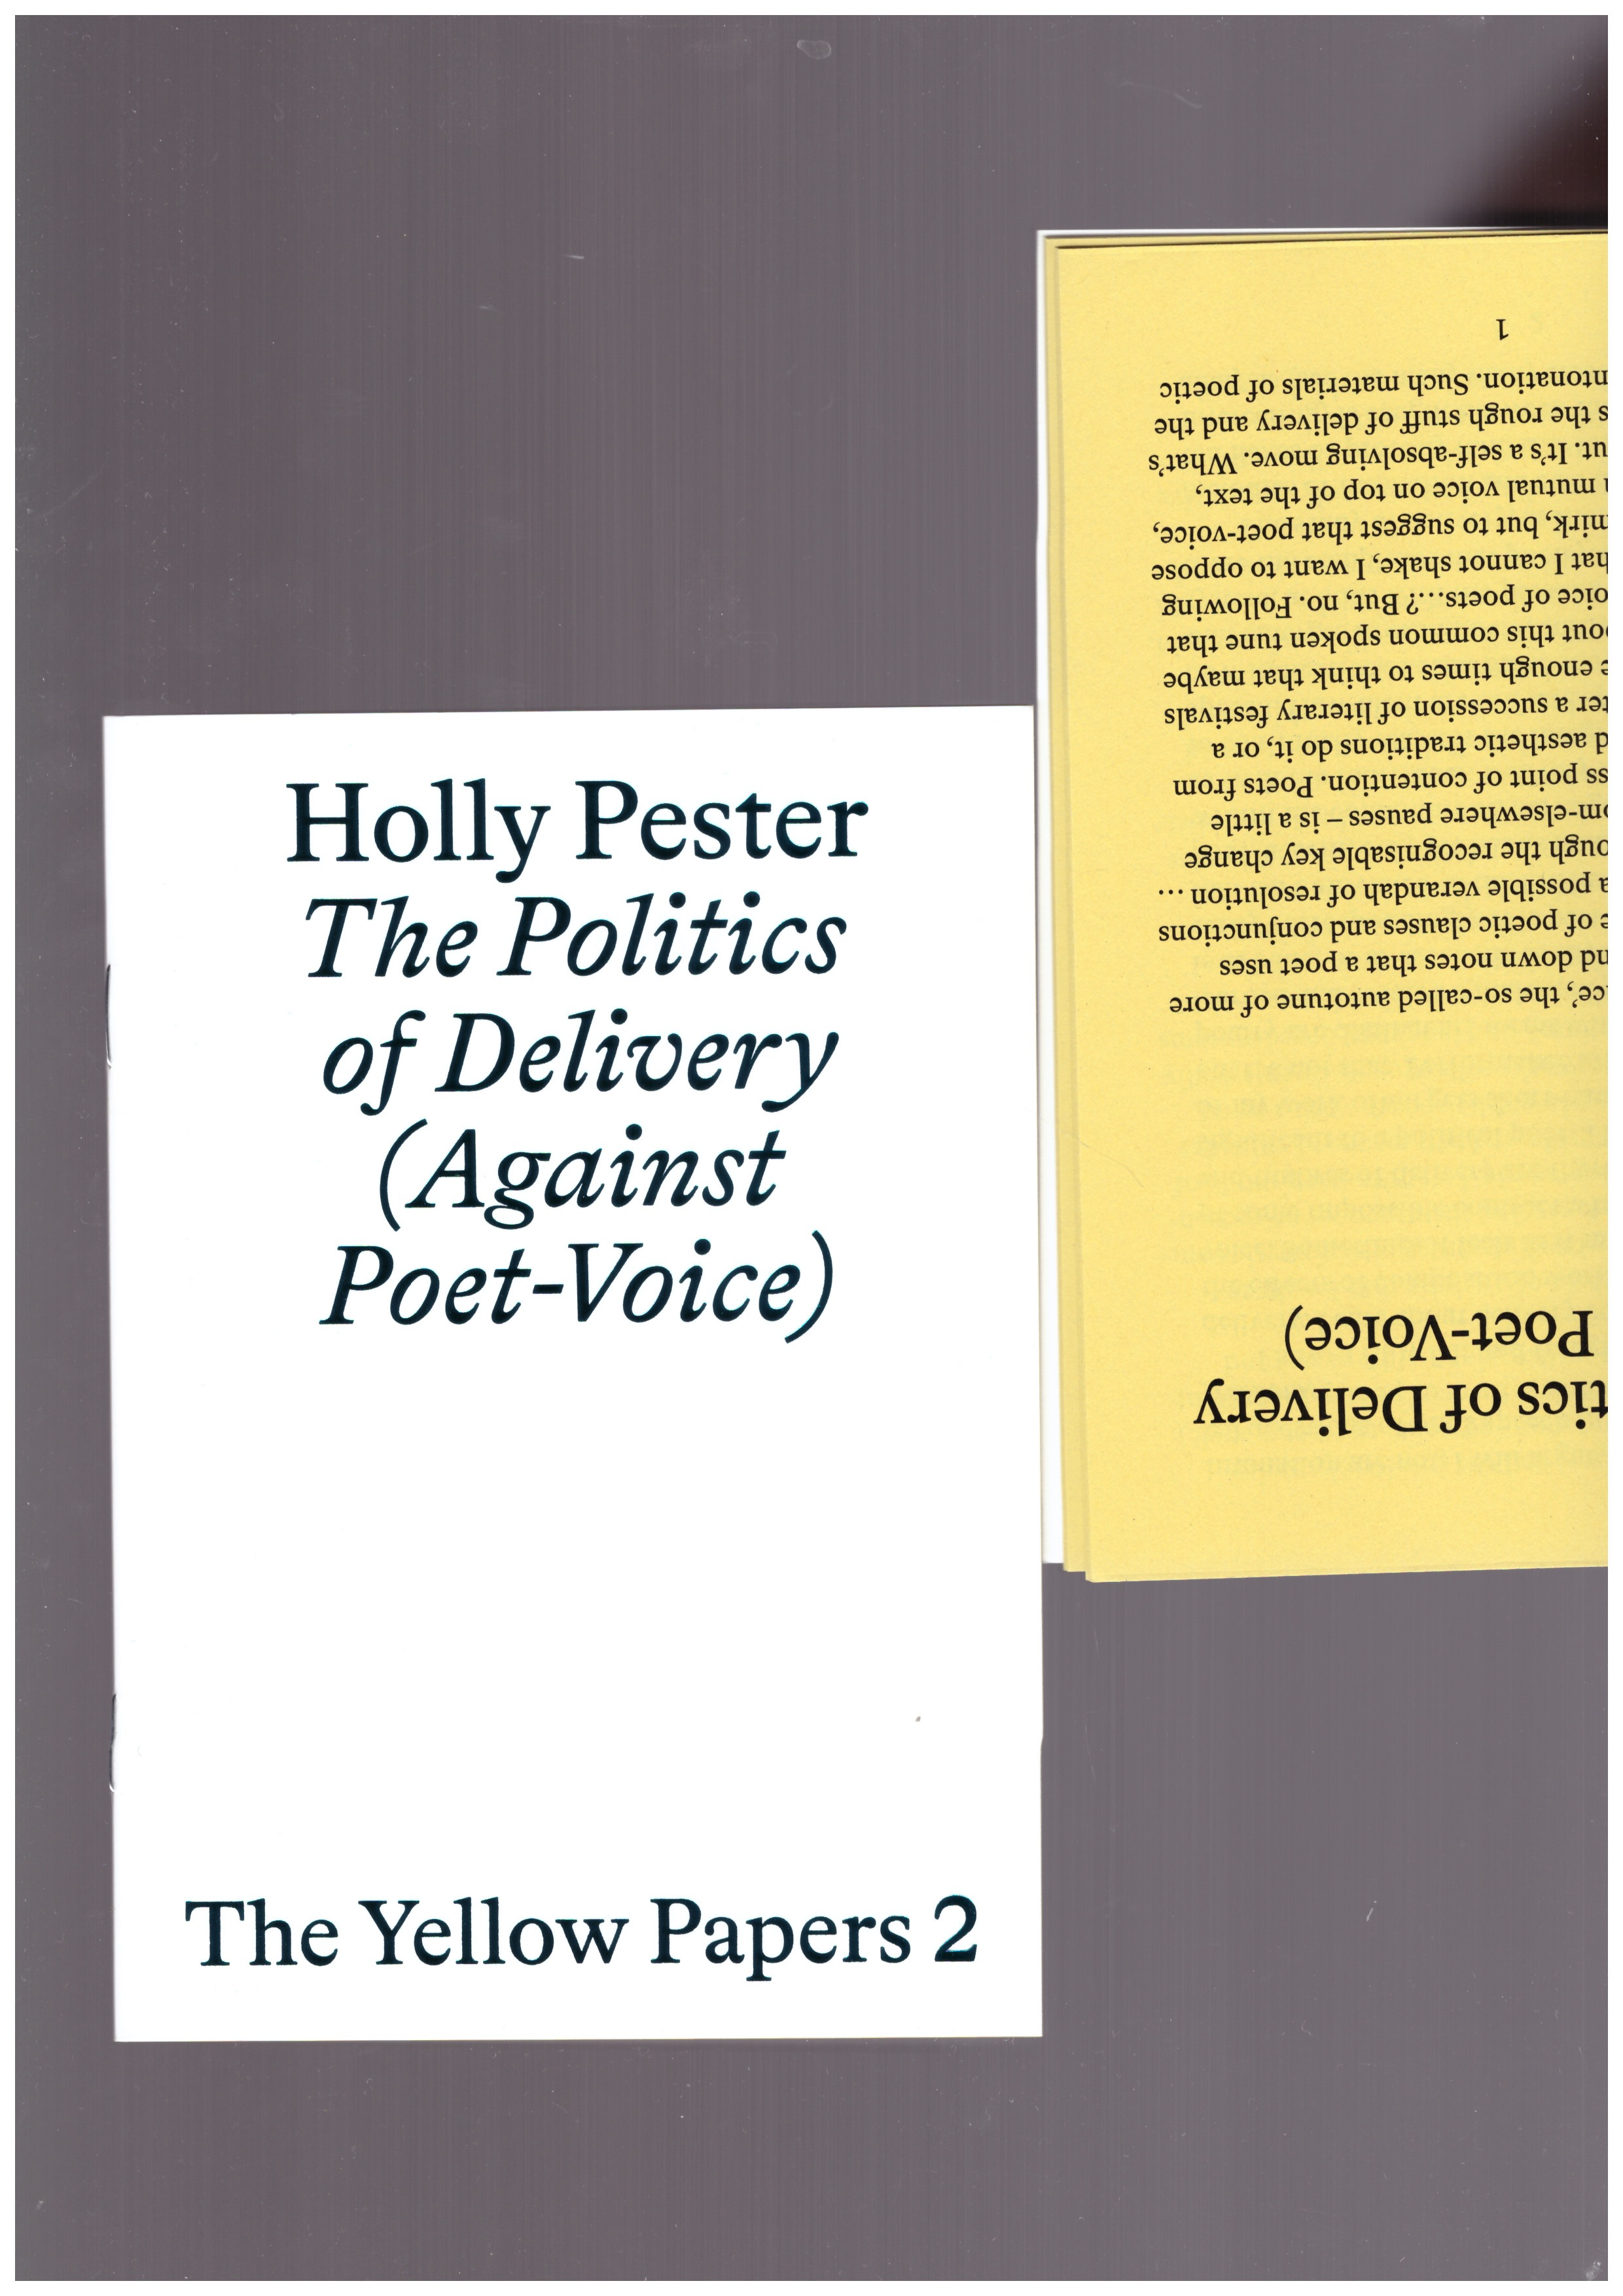 PESTER, Holly - The Yellow Papers 2. The Politics of Delivery (Against Poet-Voice)